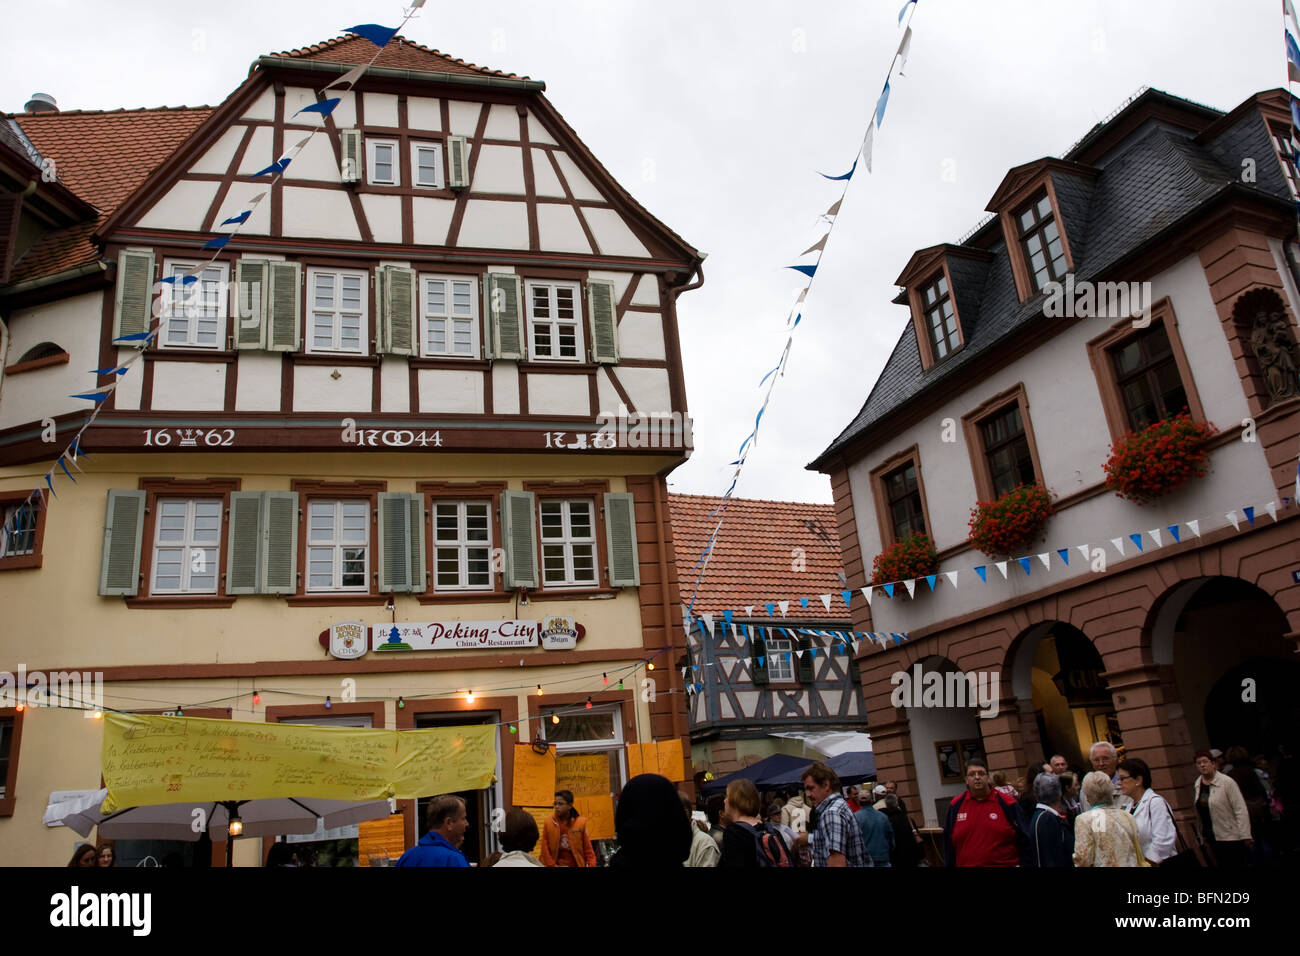 A flea market in the historical center of Ladenburg, Germany - Stock Image